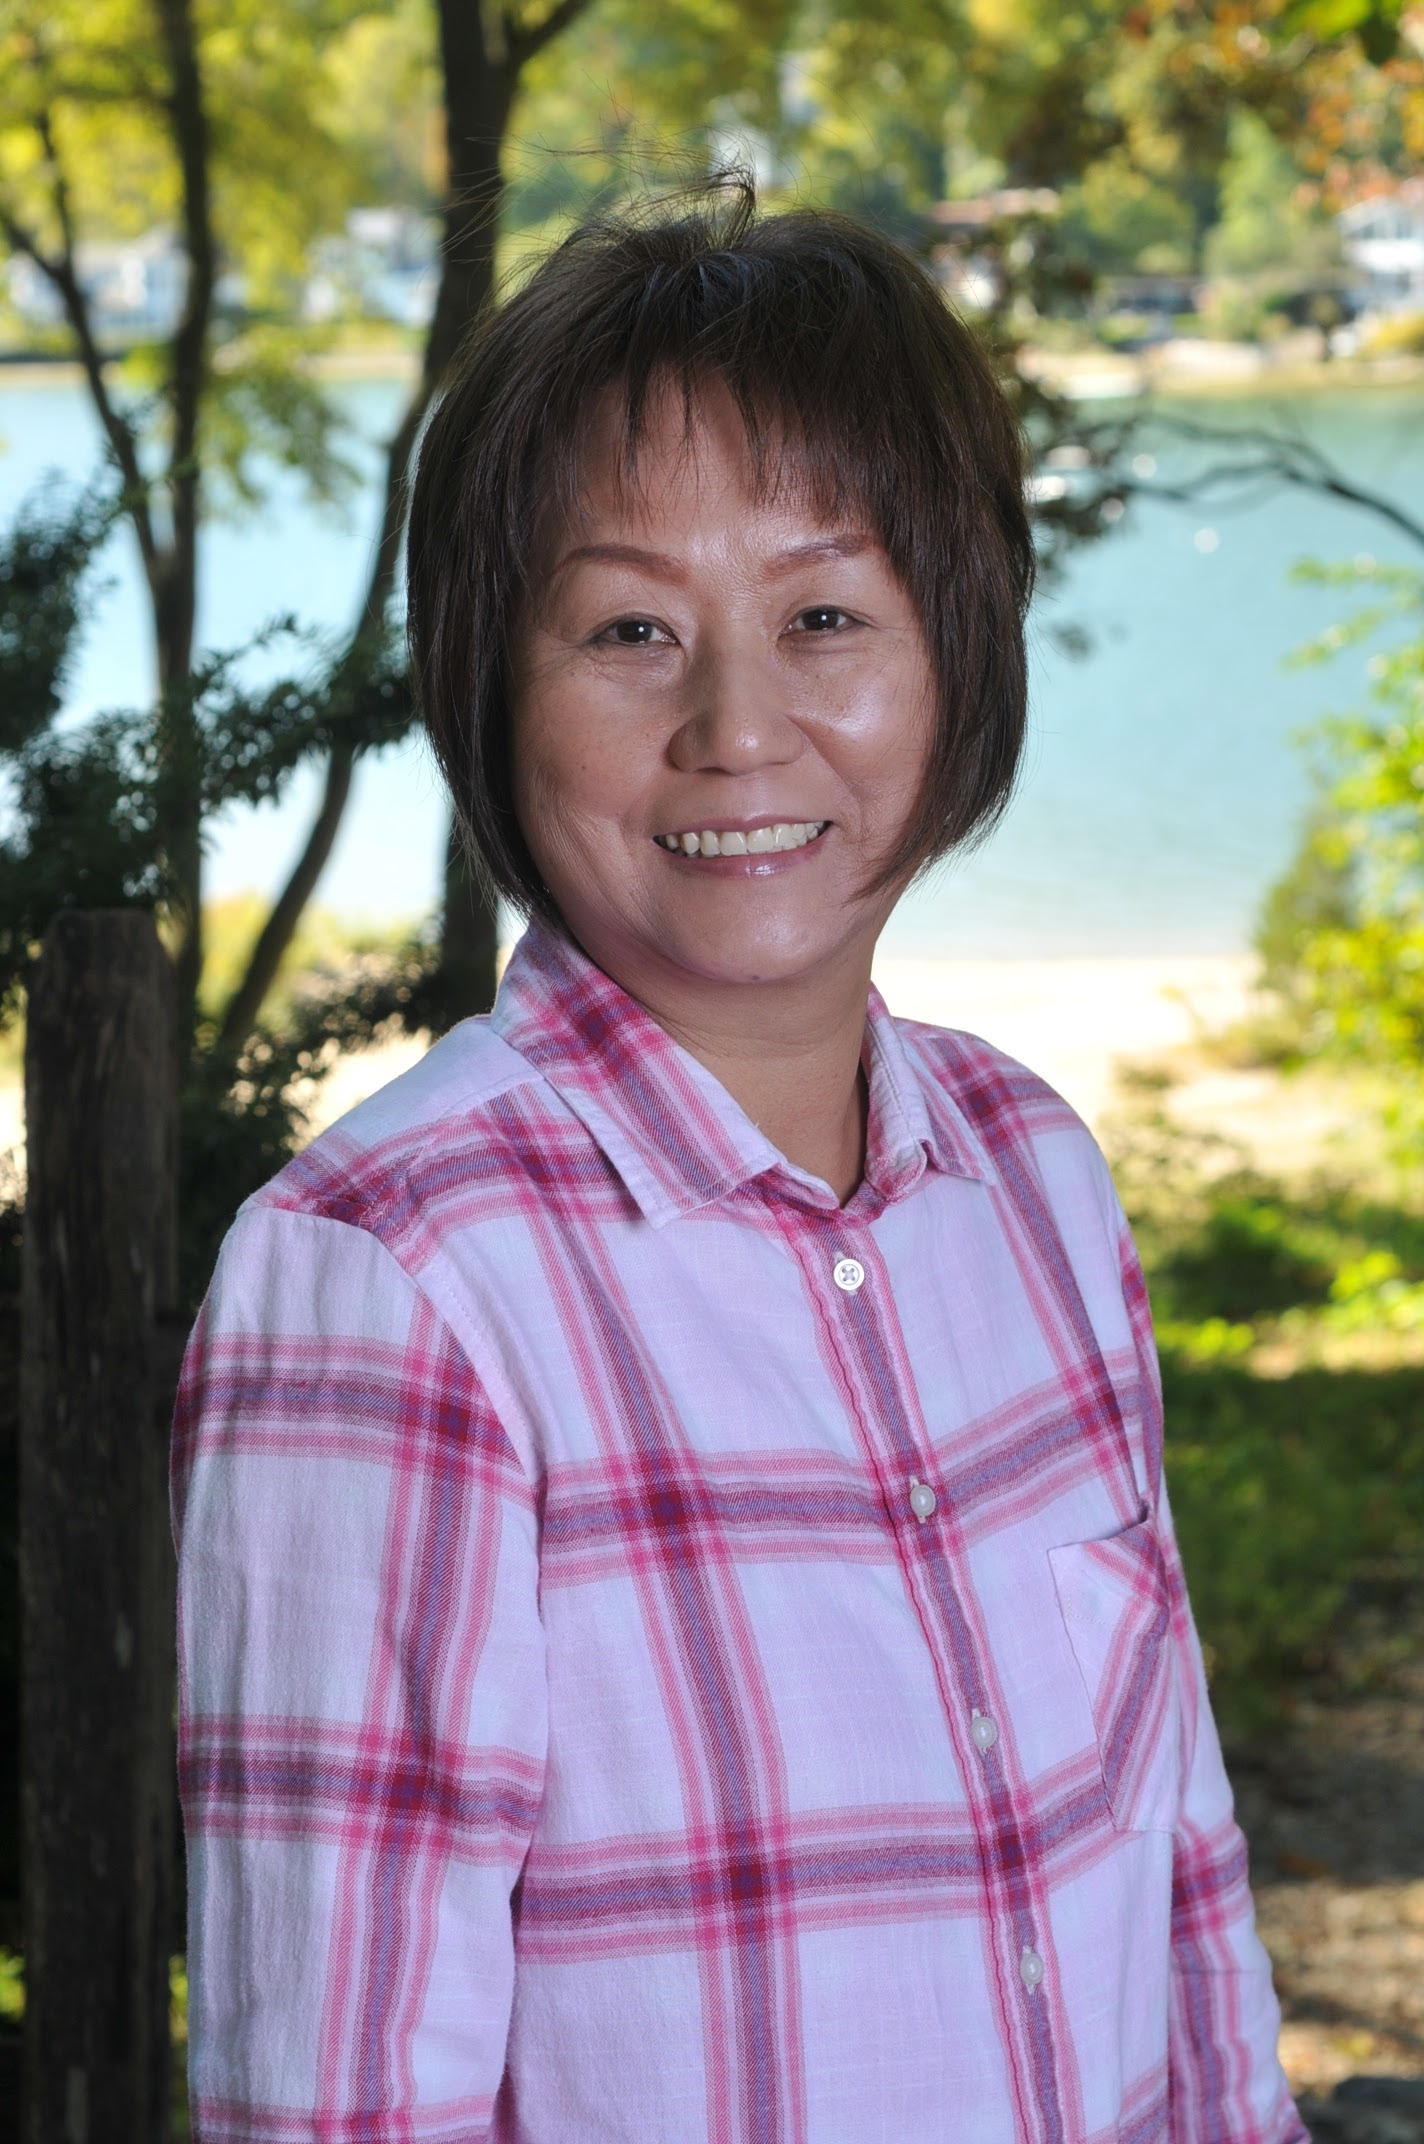 Atsuko Inoue, Assistant Teacher    years at lol:  15 years   experience:  18 years classroom experience